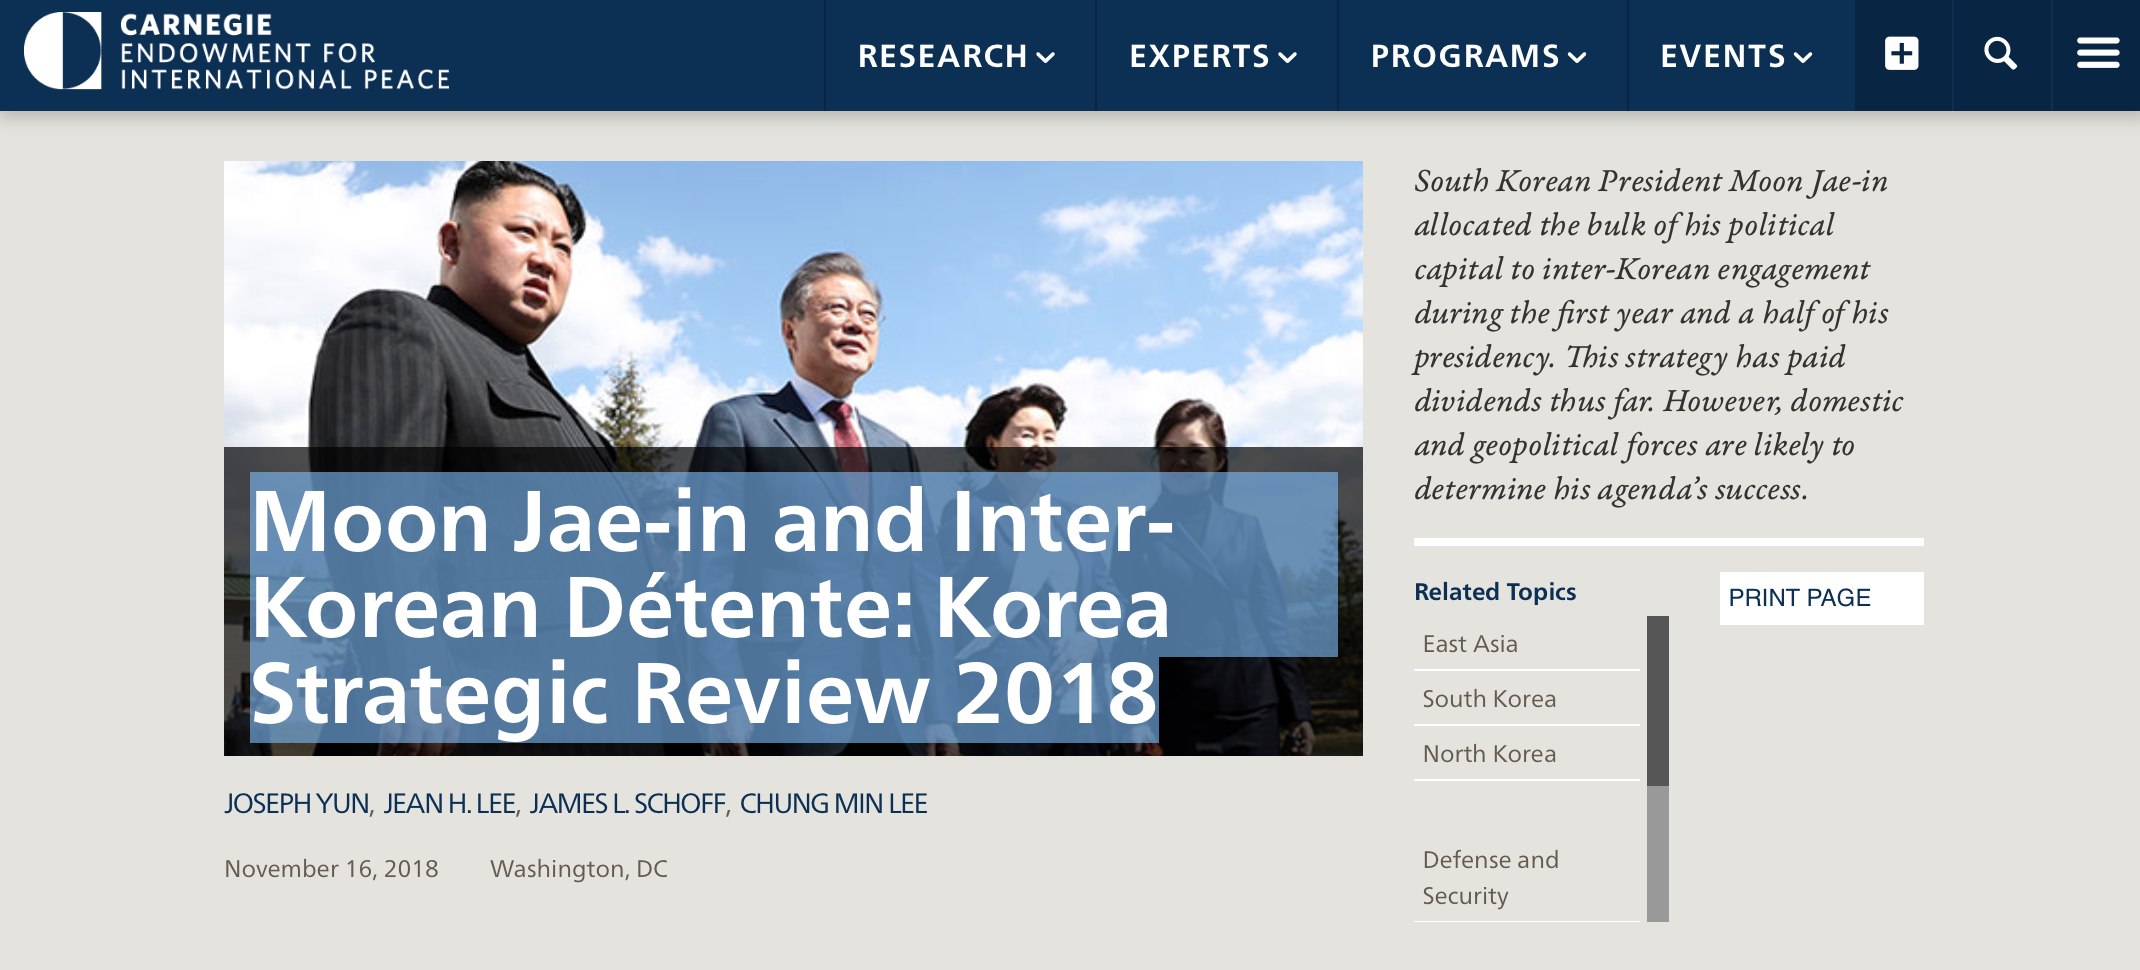 CEIP Moon Jae-in and Inter-Korean Détente: Korea Strategic Review 2018